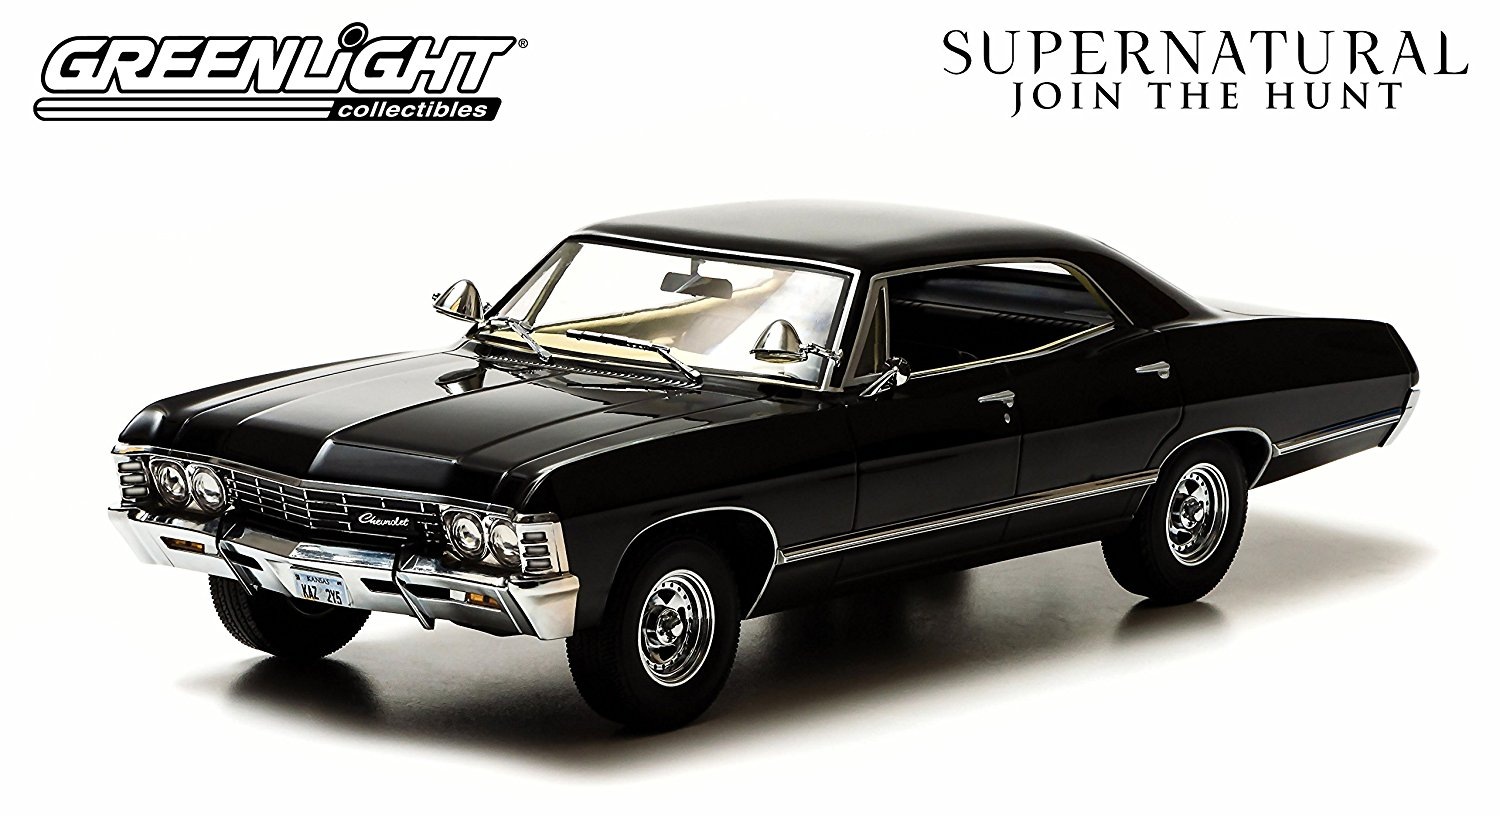 Buy Greenlight Artisan Supernatural Tv Show Chevy Impala Hard Top 1967 1 18 Scale Diecast Model Car Black 19001 Diecast Motorcycles And Cars In Cheap Price On Alibaba Com